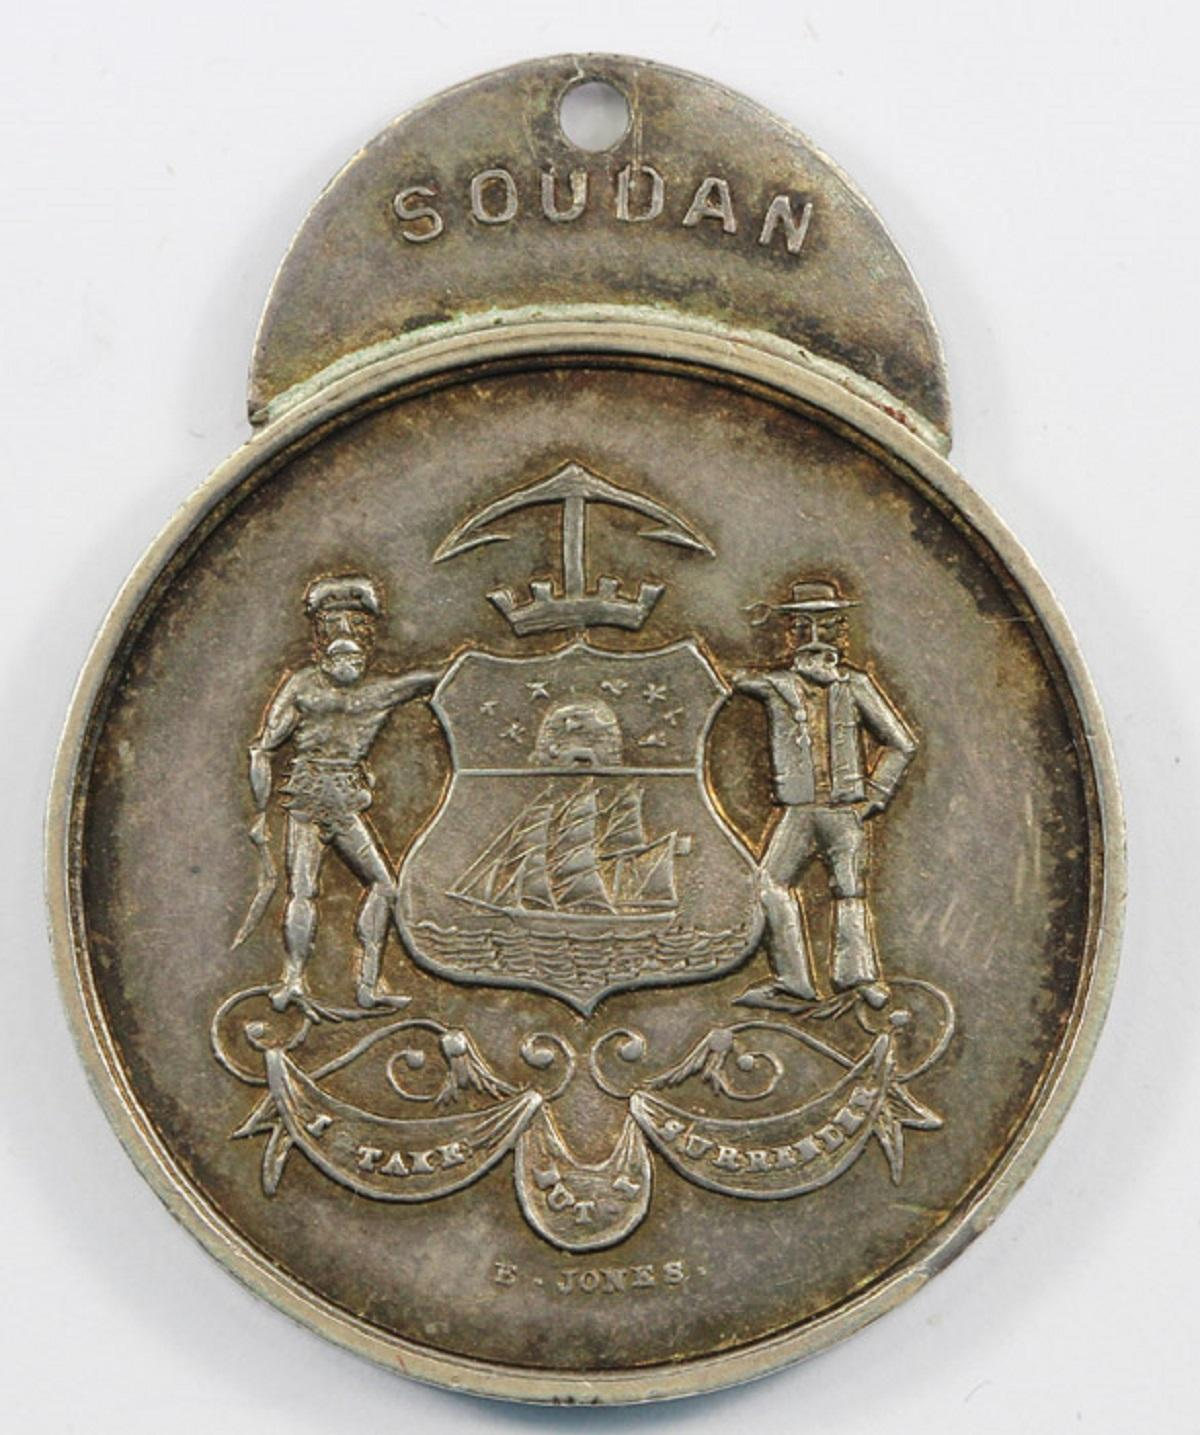 Australia. 1885 'Lord Mayor's Soudan Medal' presented by the Citizens of Sydney, about Uncirculated and unengraved